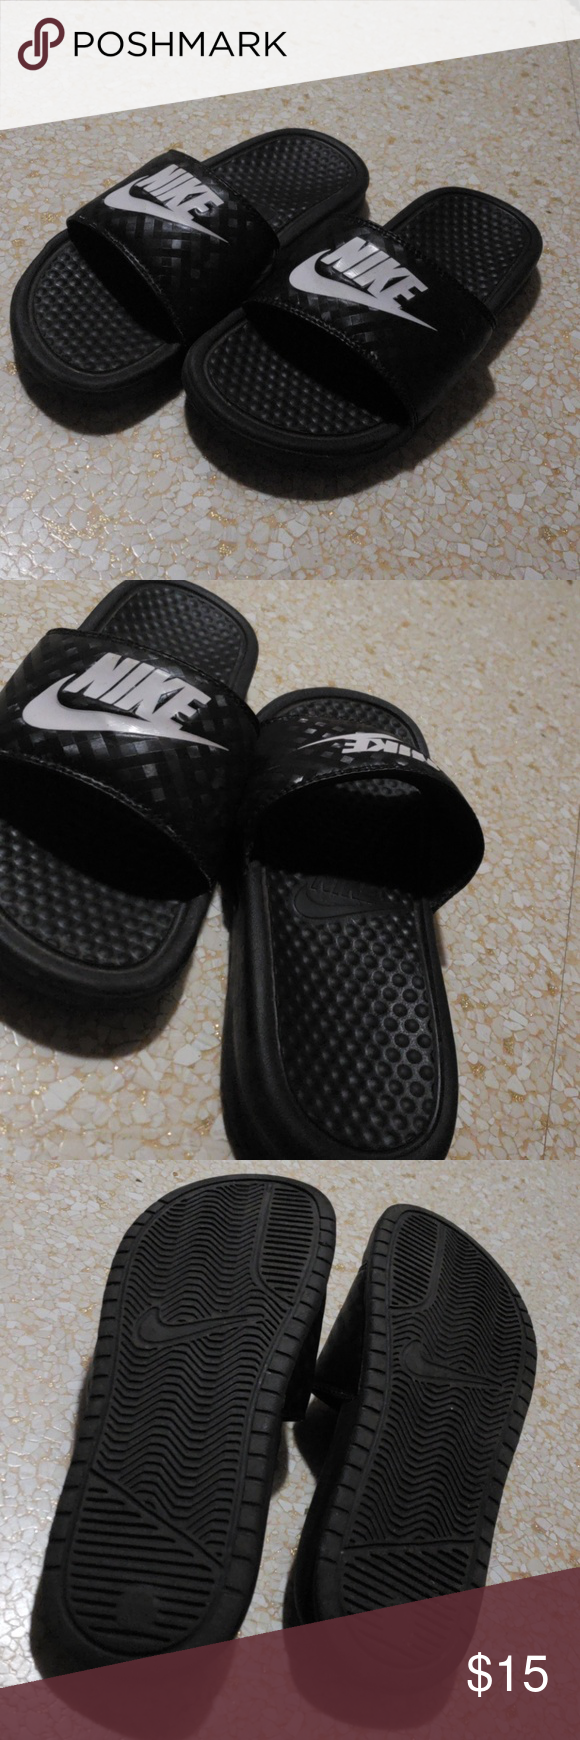 the best attitude 00367 f5b6d Nike Shoes | Nike Slippers | Color: Black/White | Size: 5 ...